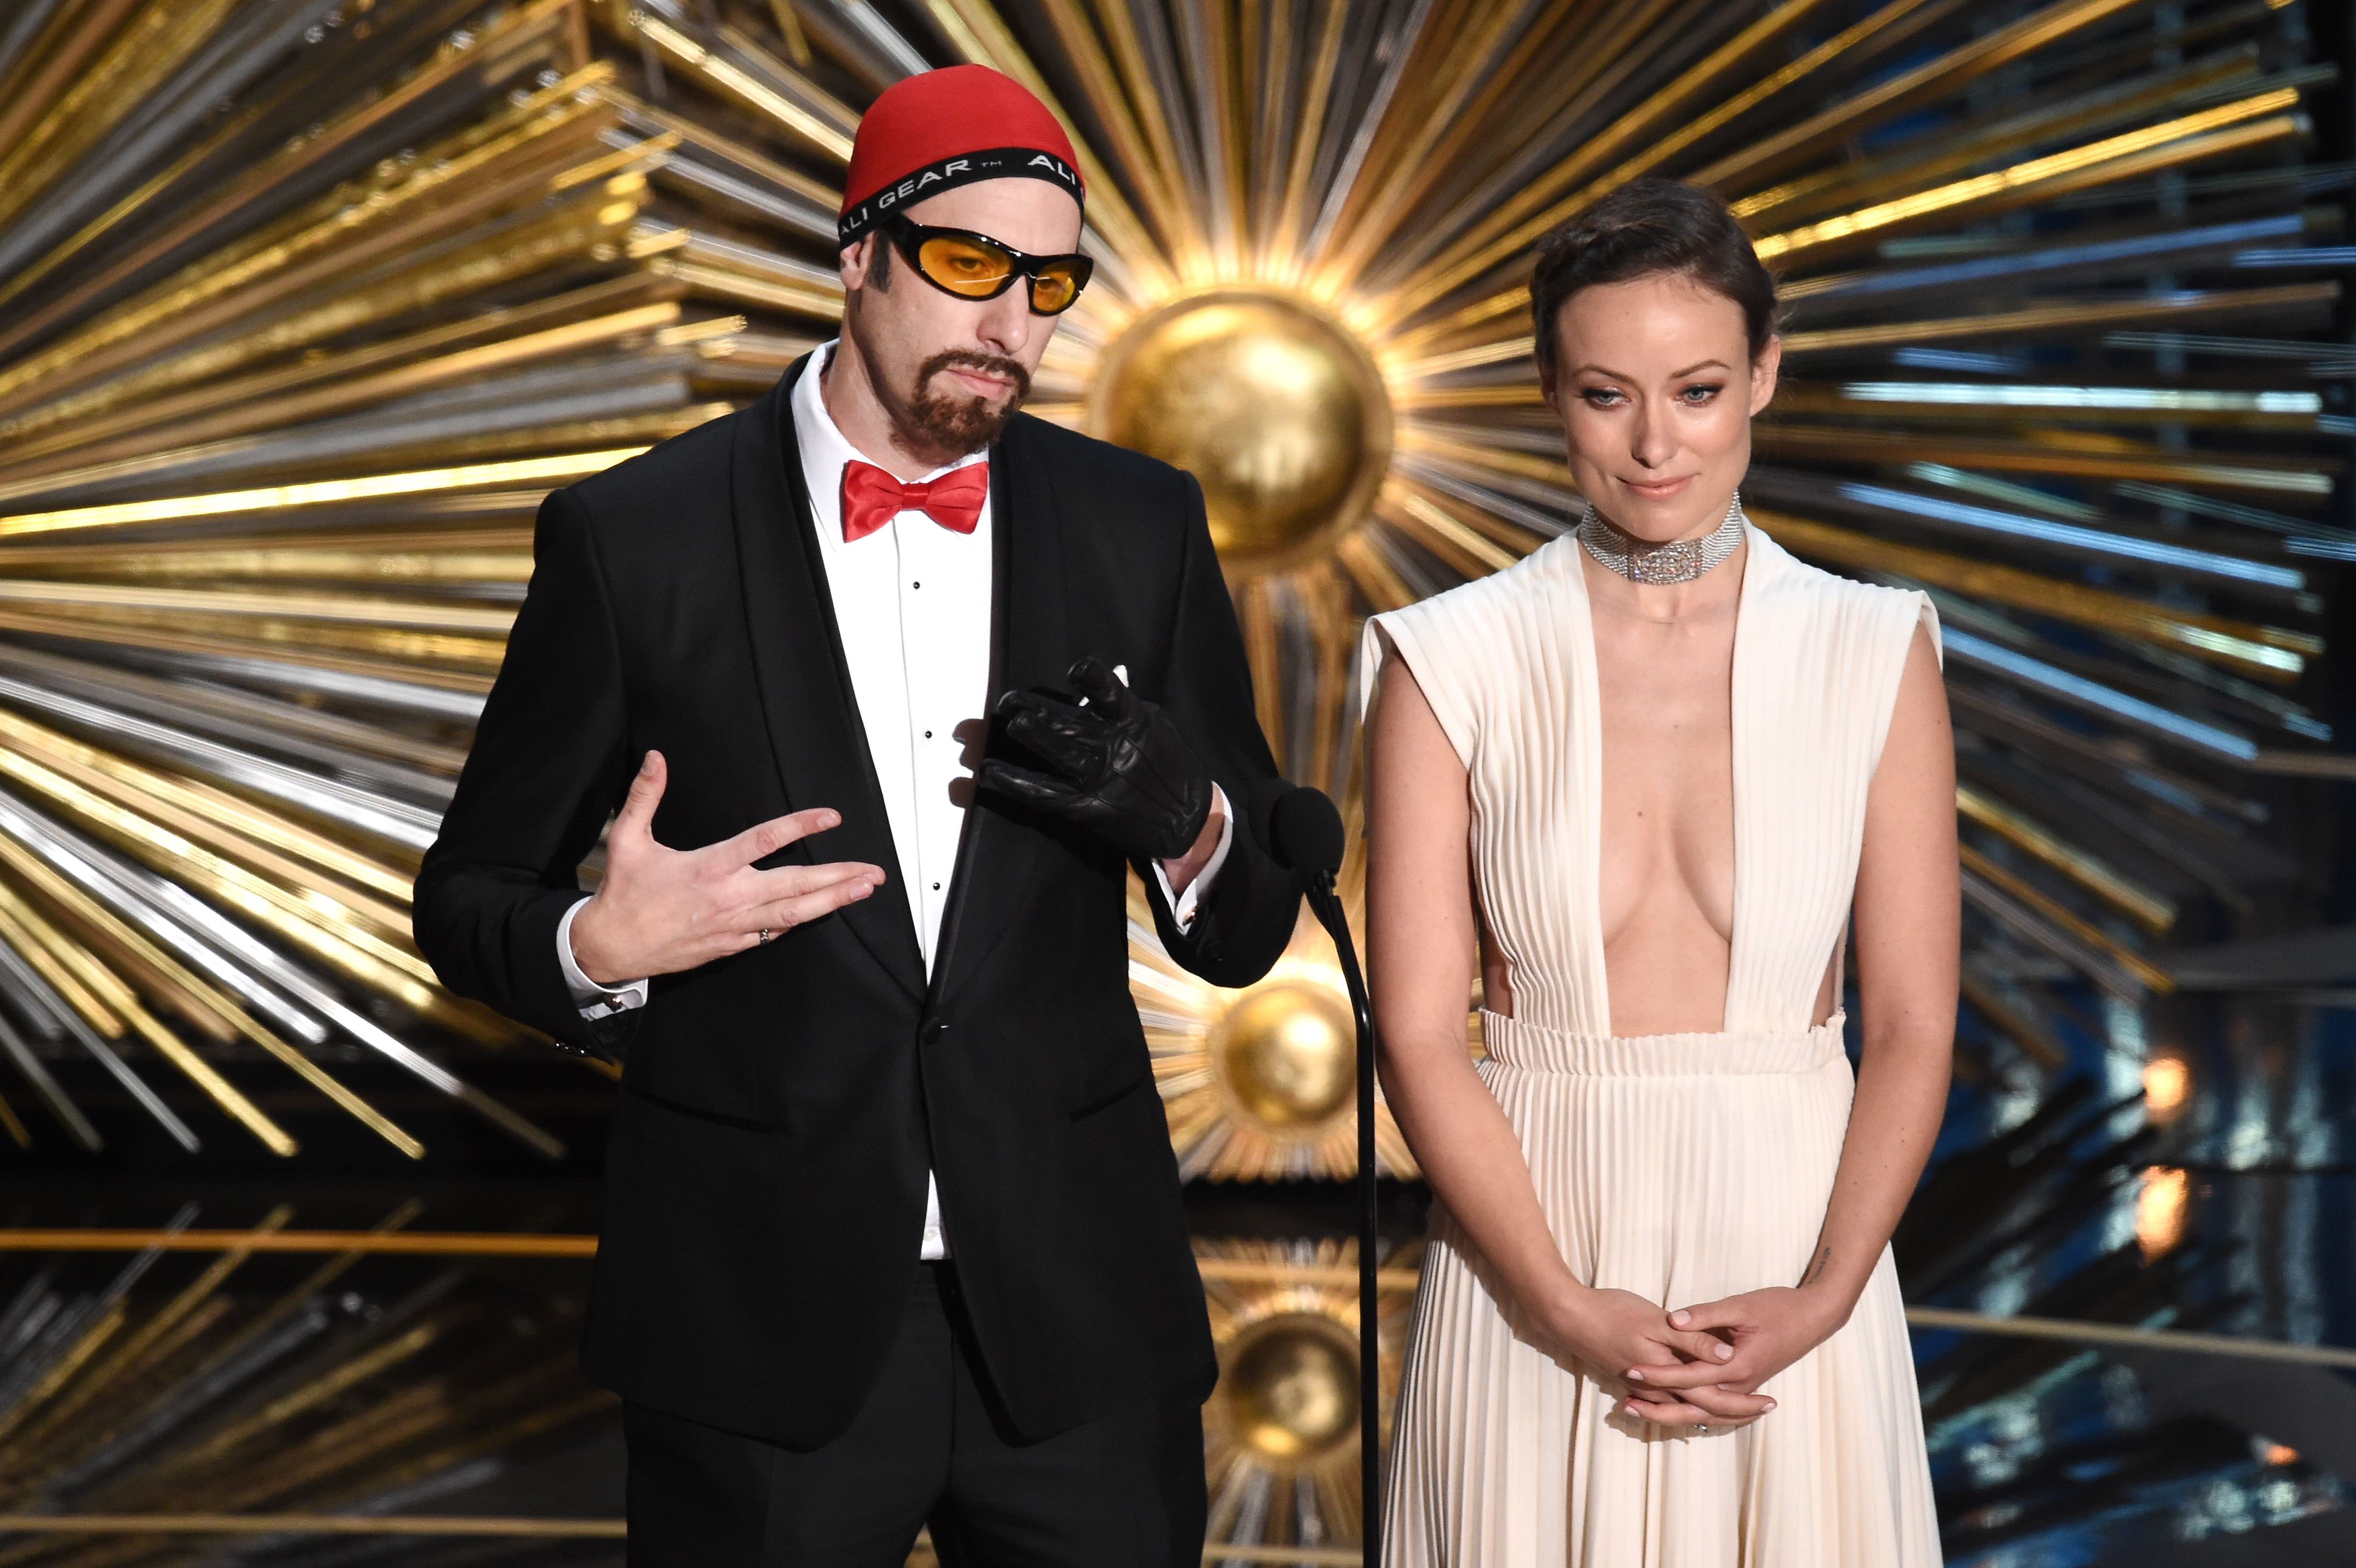 Oscars 2016: Sacha Baron Cohen appeared as Ali G despite Academy telling him not to